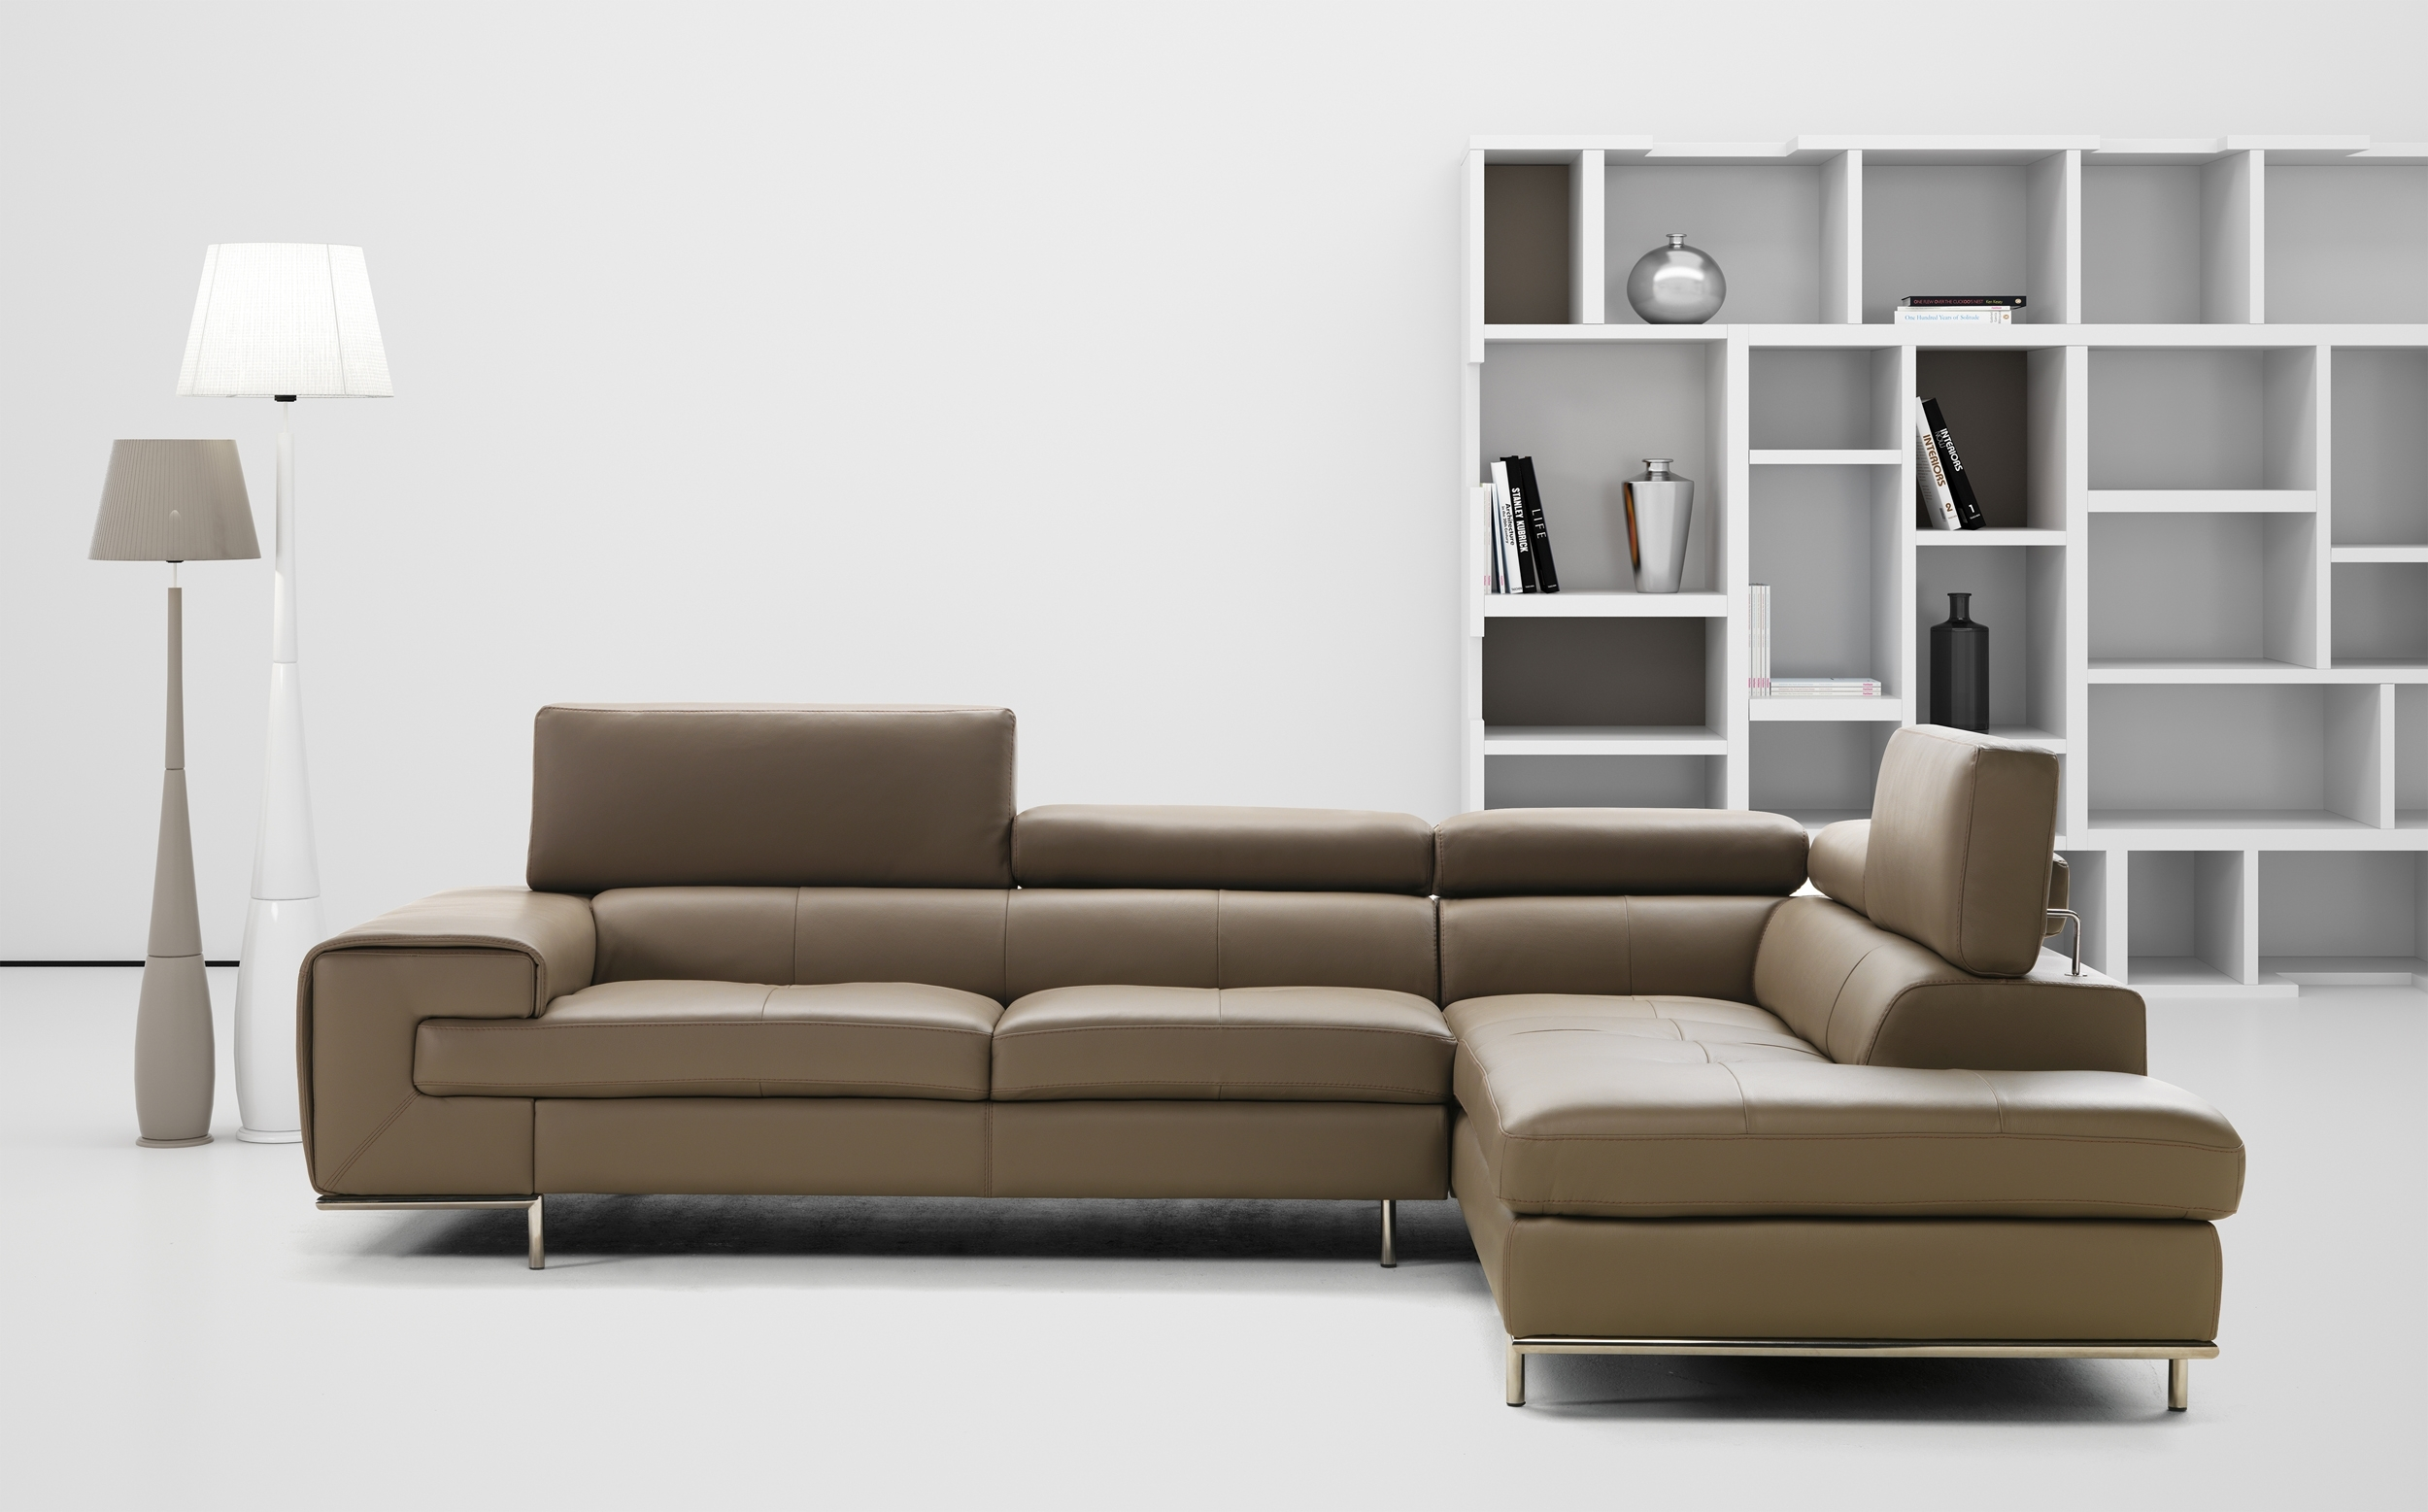 Real Leather Tufted Sectional Sofa Memphis Tennessee Industria With Regard To Tufted Sectional Sofas (View 9 of 10)